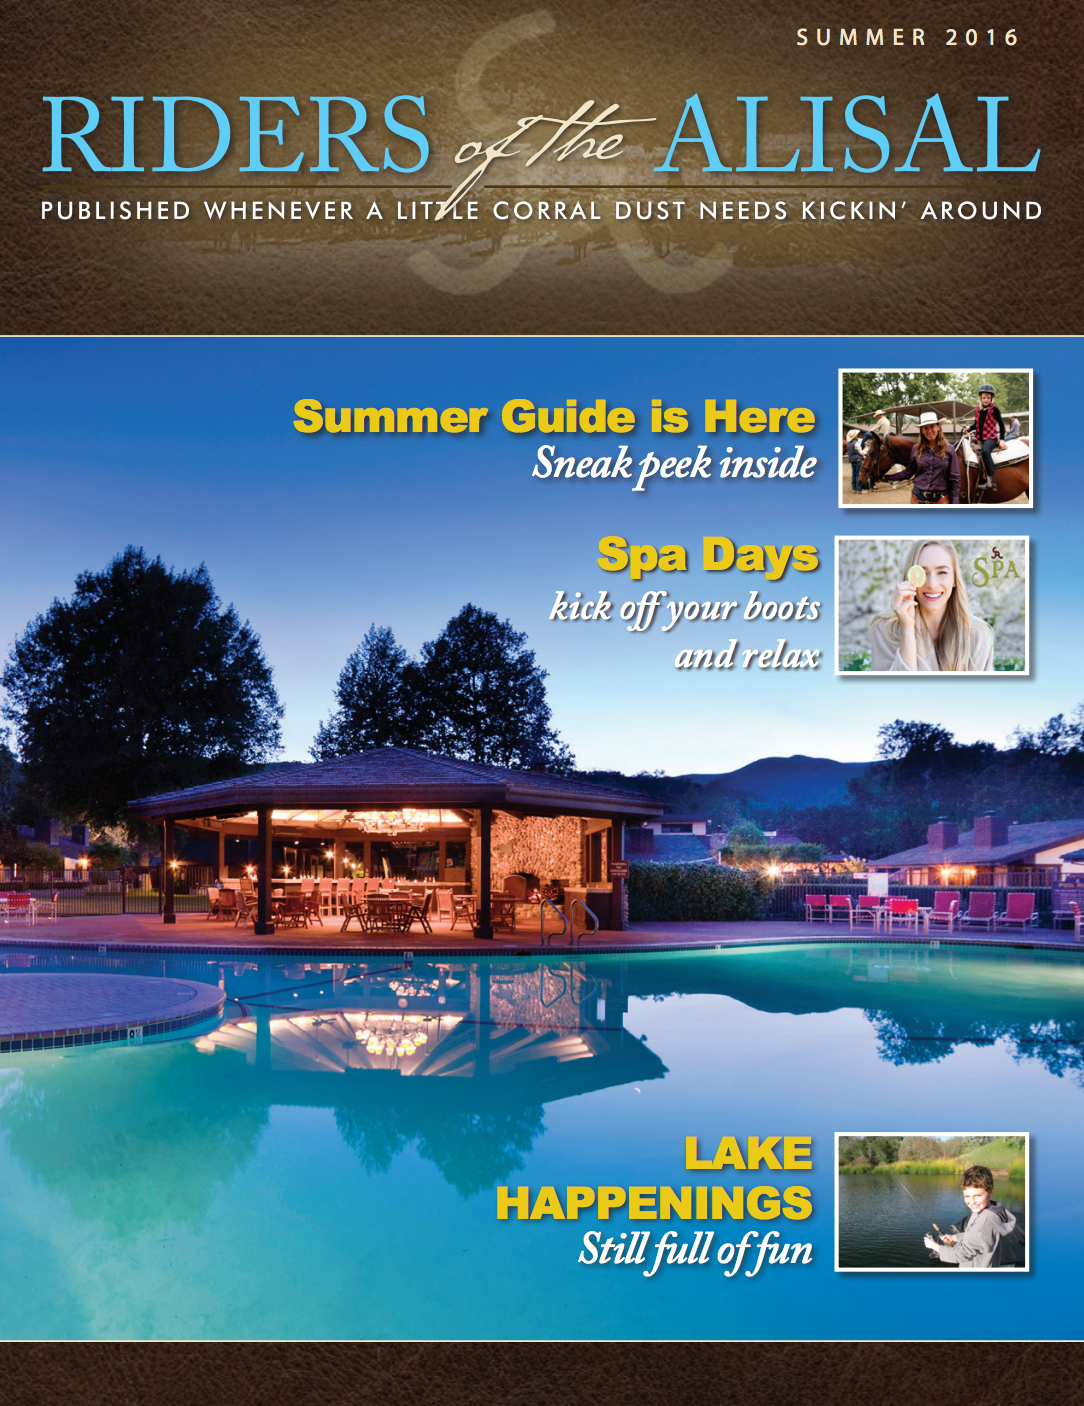 Riders of the Alisal Summer Guide 2016 - Alisal Guest Ranch and Resort